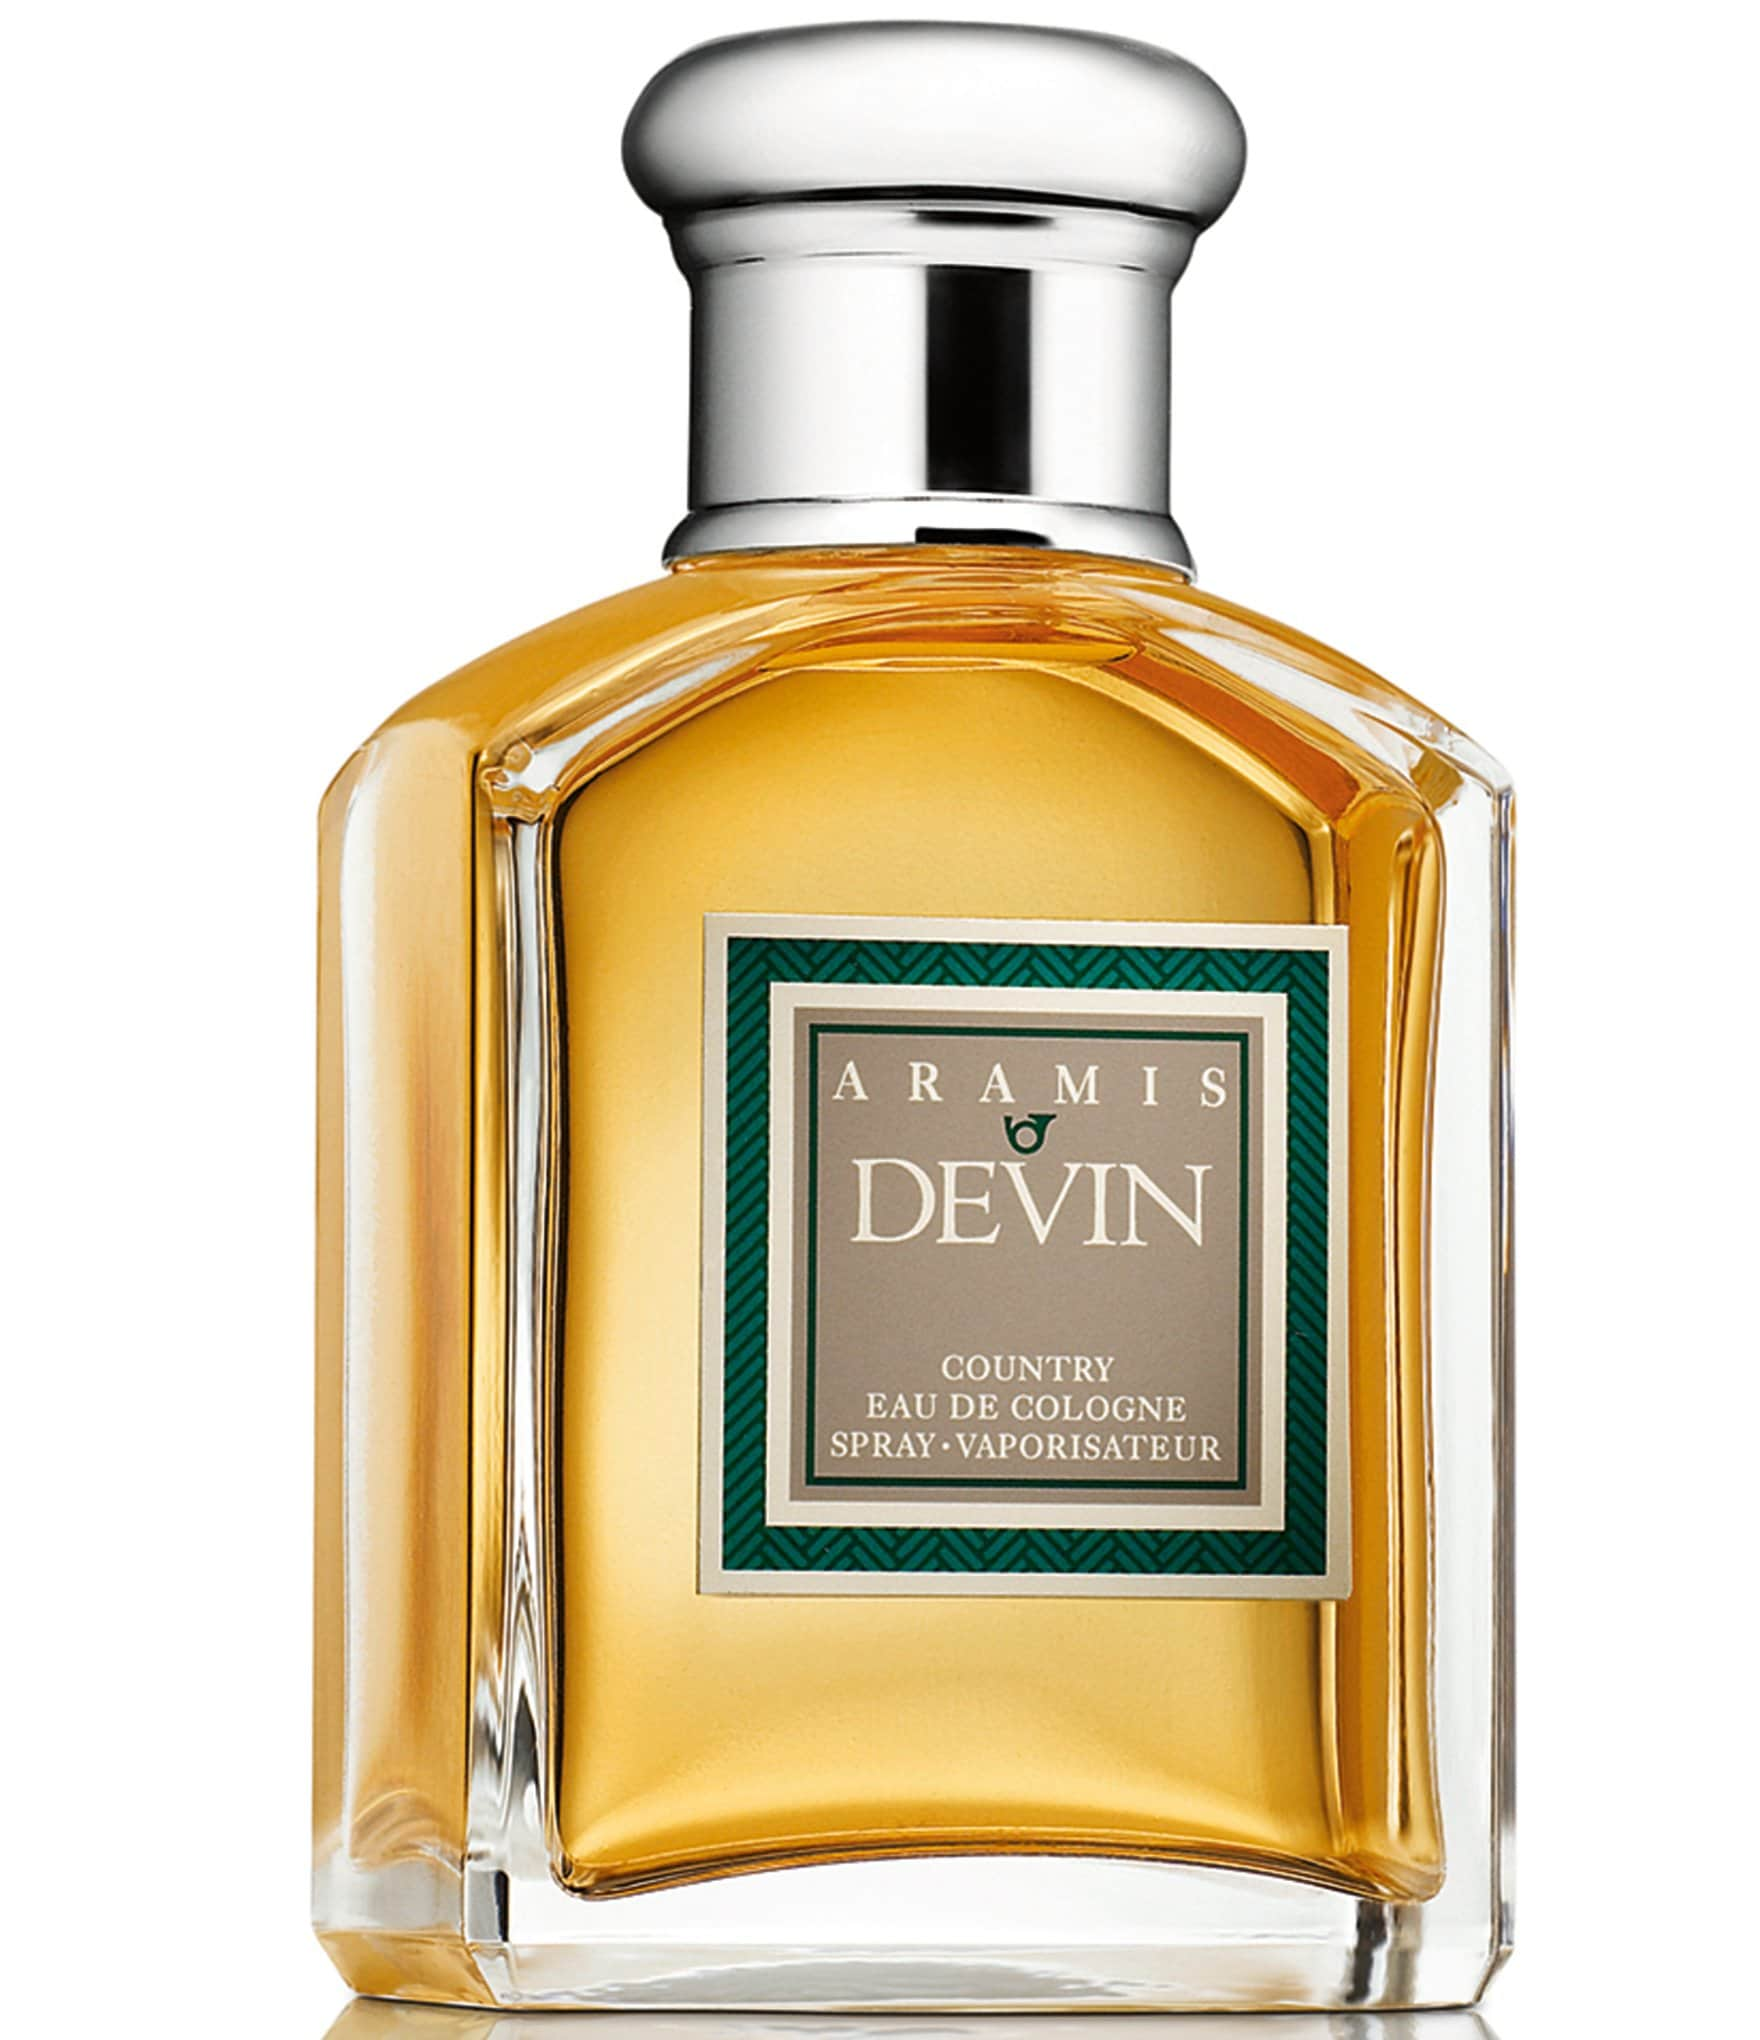 Circle Track Supply >> Aramis Limited-Edition Devin Country Eau de Cologne Spray ...